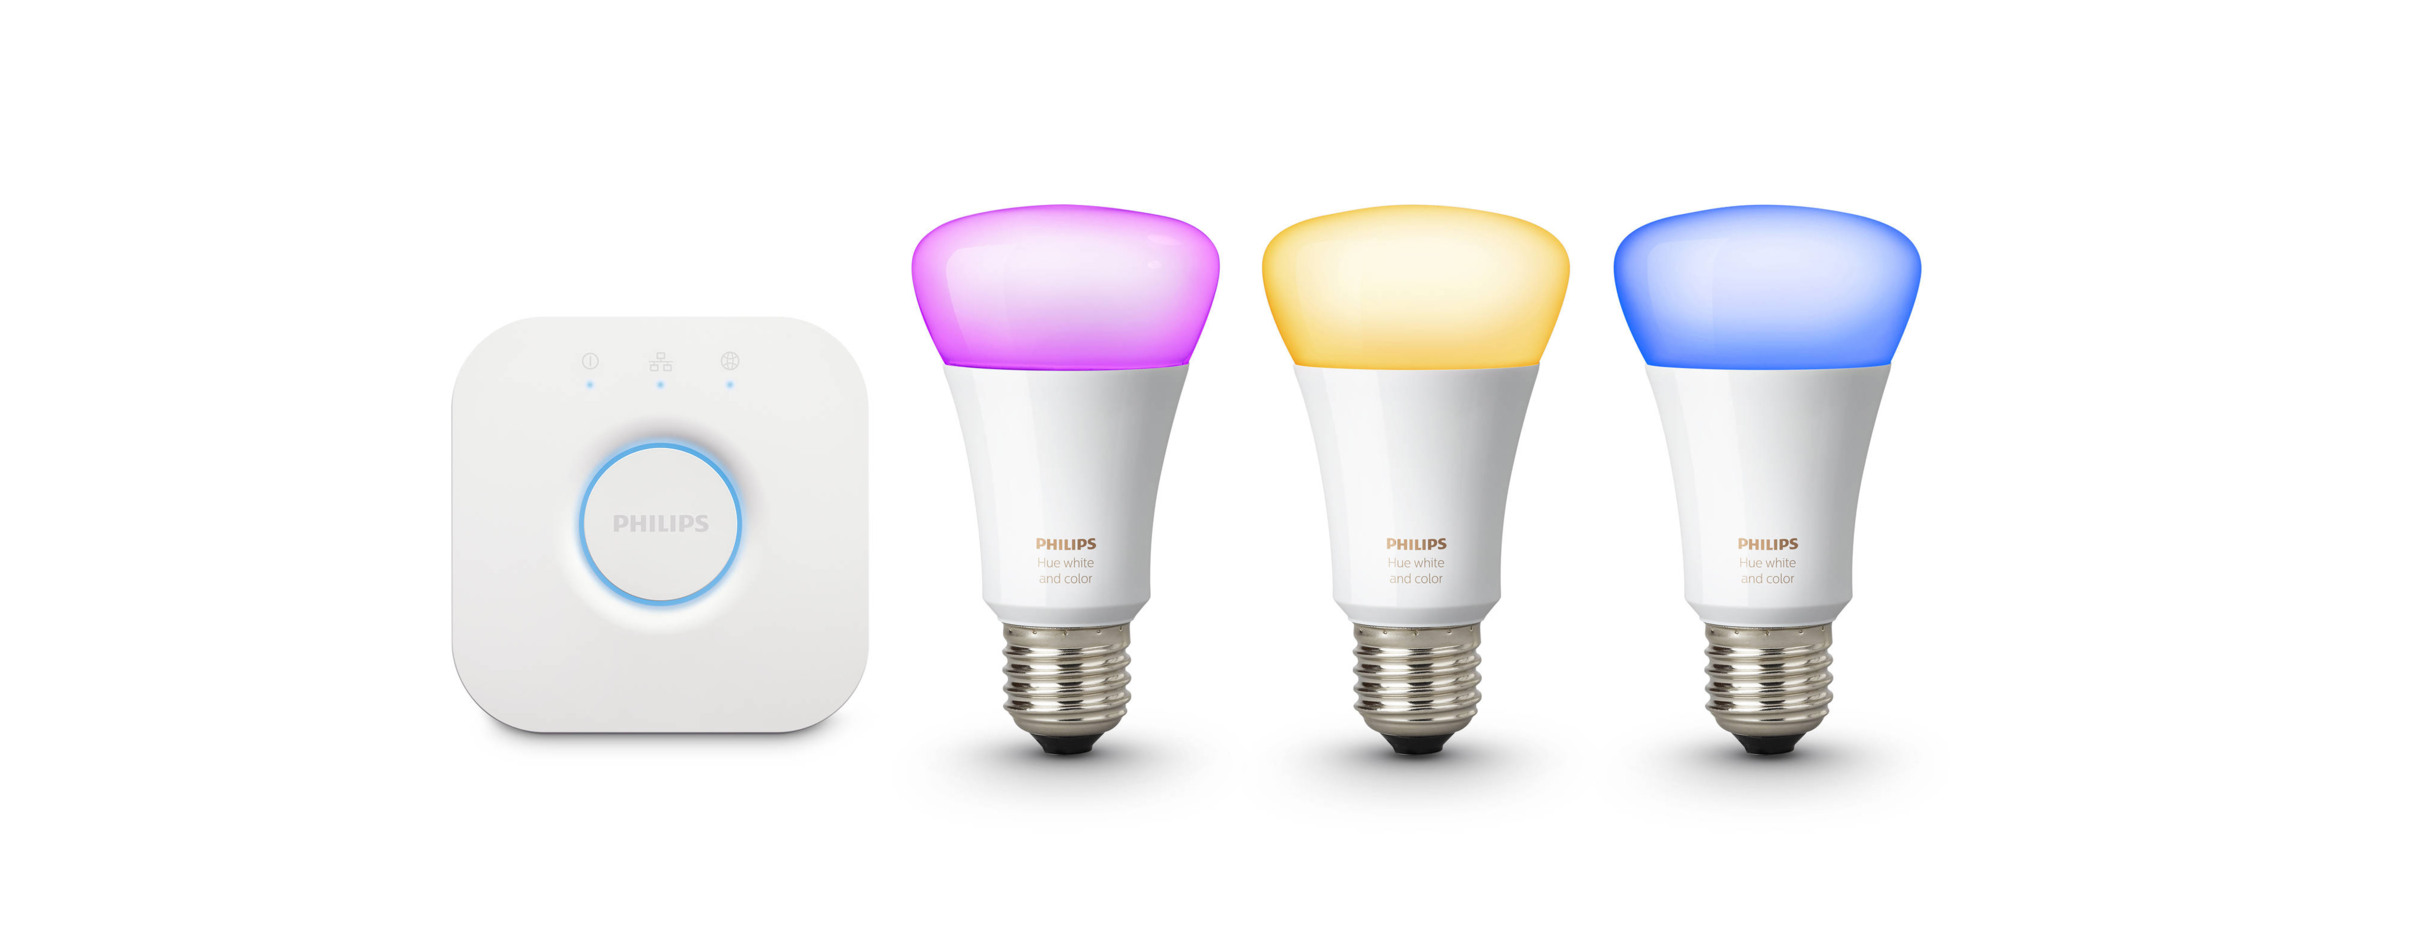 Philips Hue lighting - Add a little ambiance to your home, by controlling Philips Hue lighting with Toon. Lights on. Let's get creative.